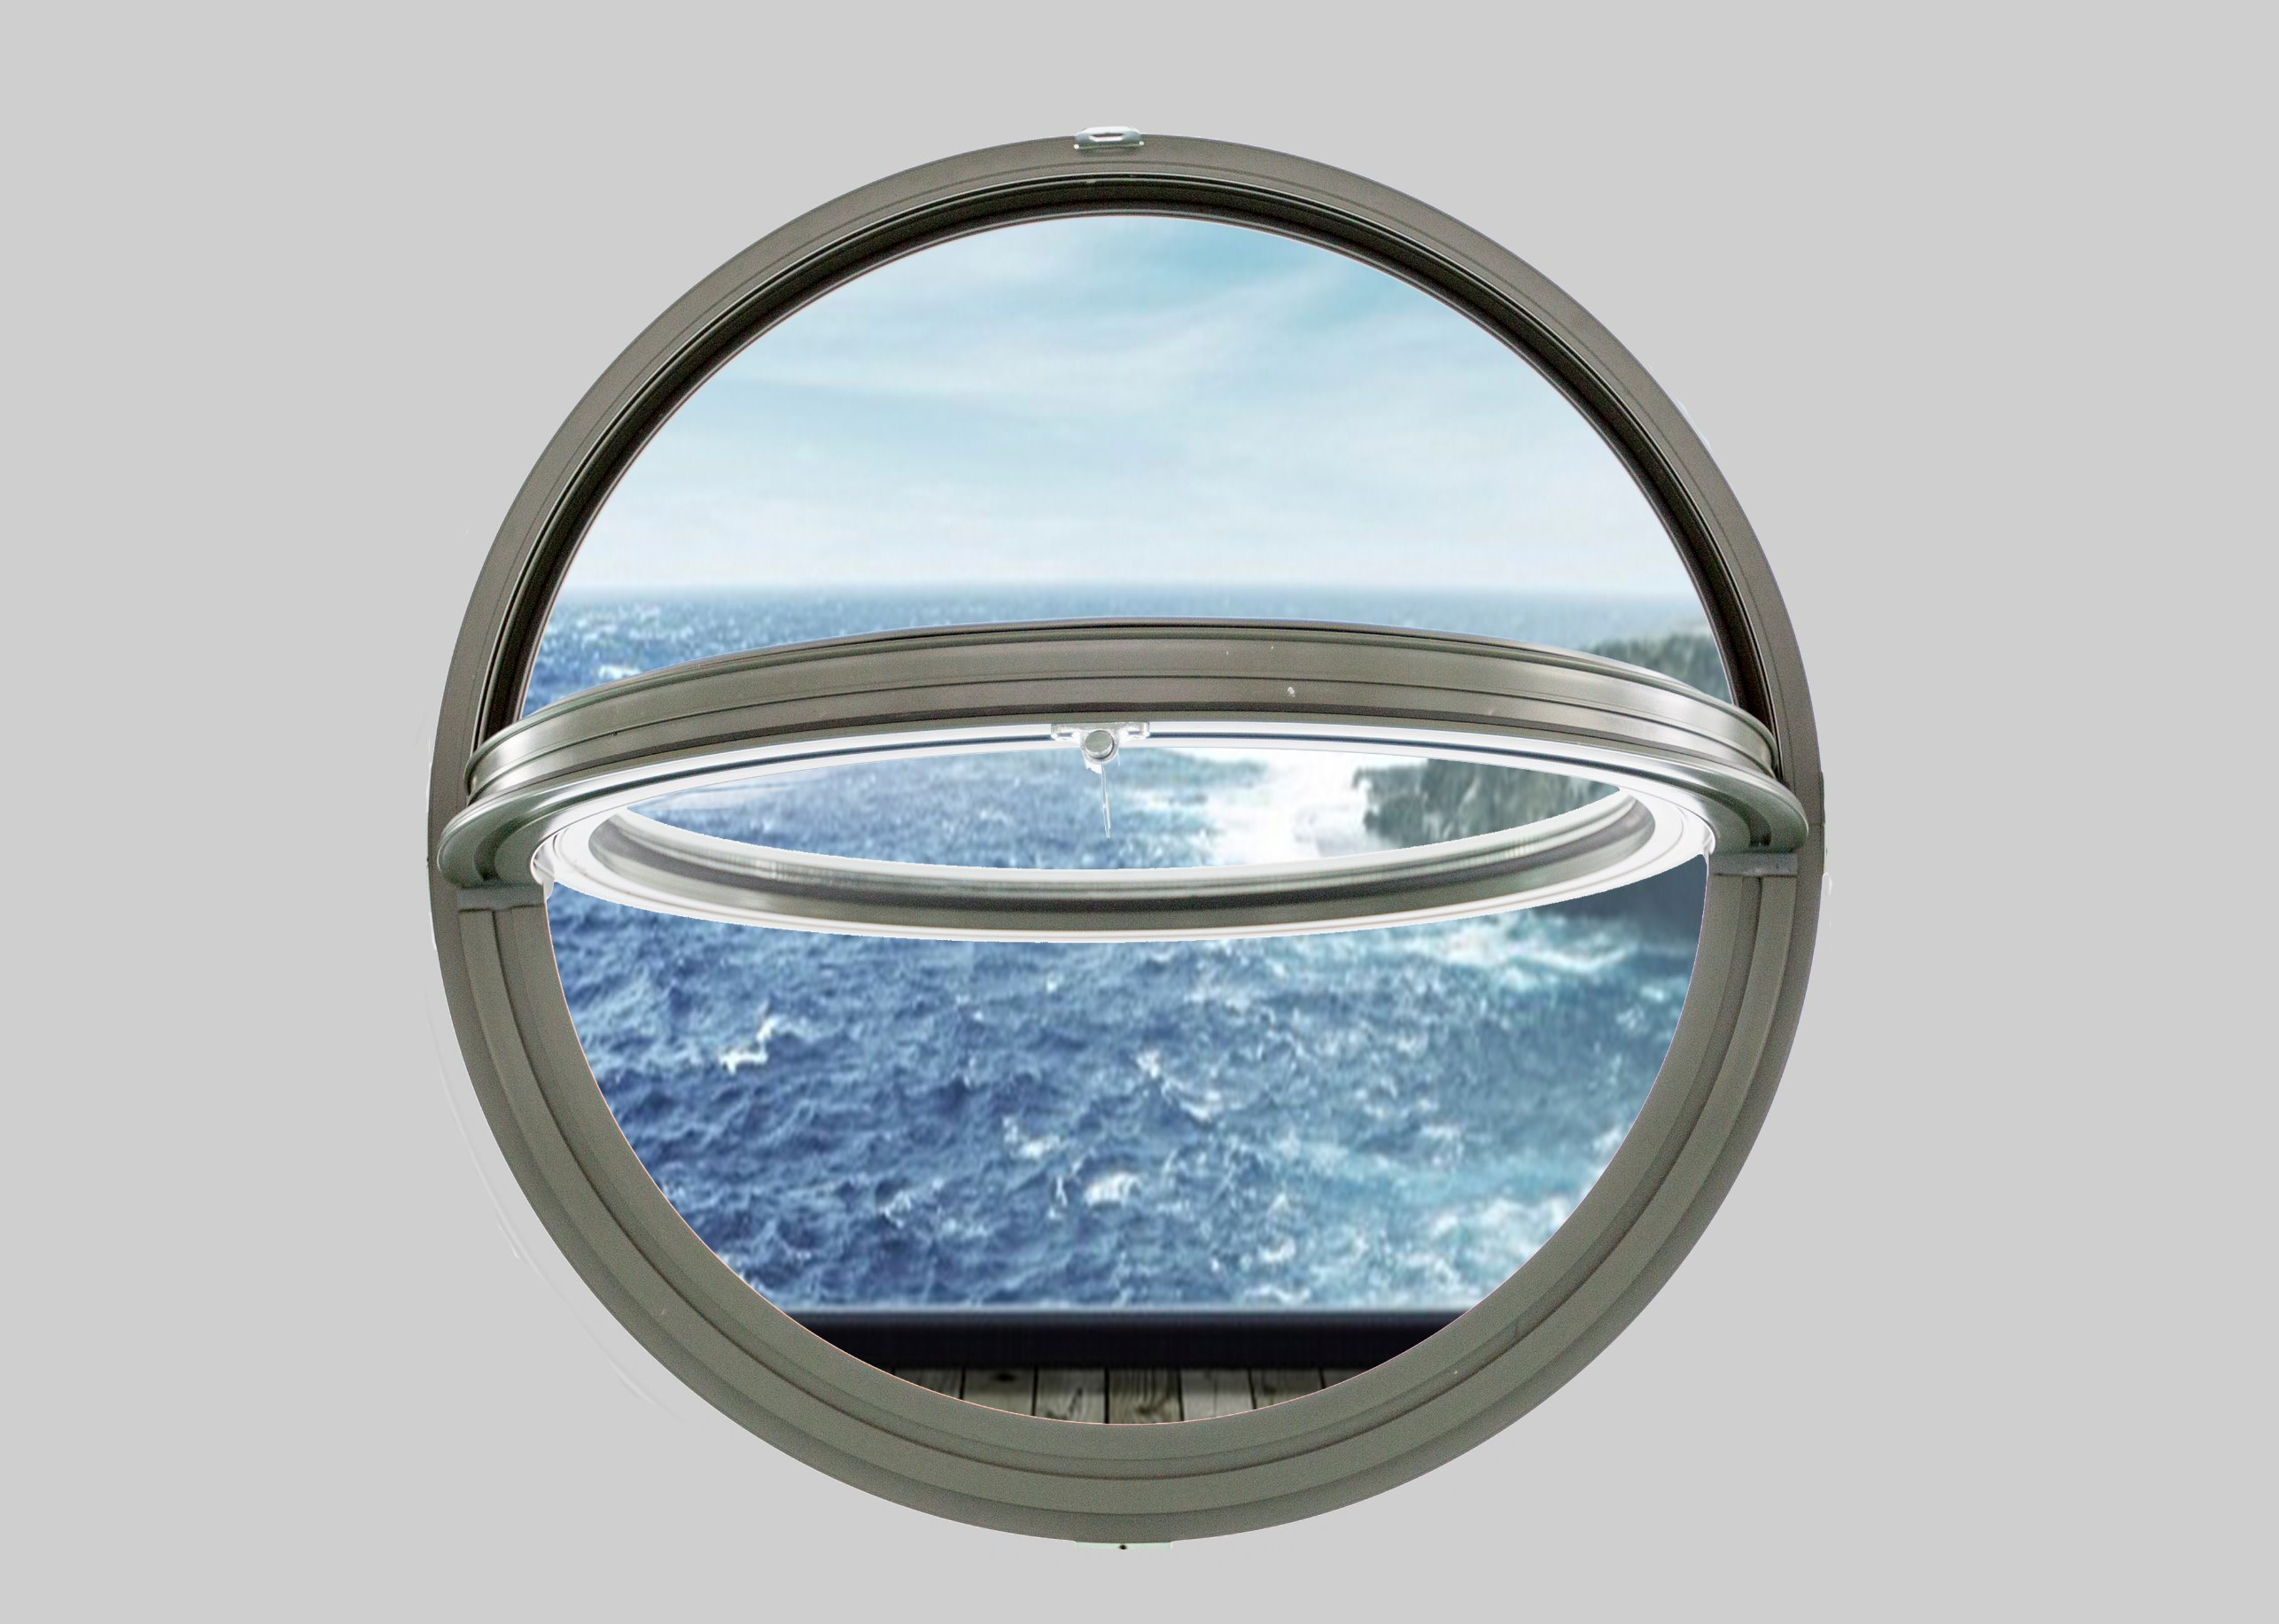 lowest price a3abb a472c [Hot Item] Double Glazing Aluminum Round Window|Aluminum Arch Window Made  in China